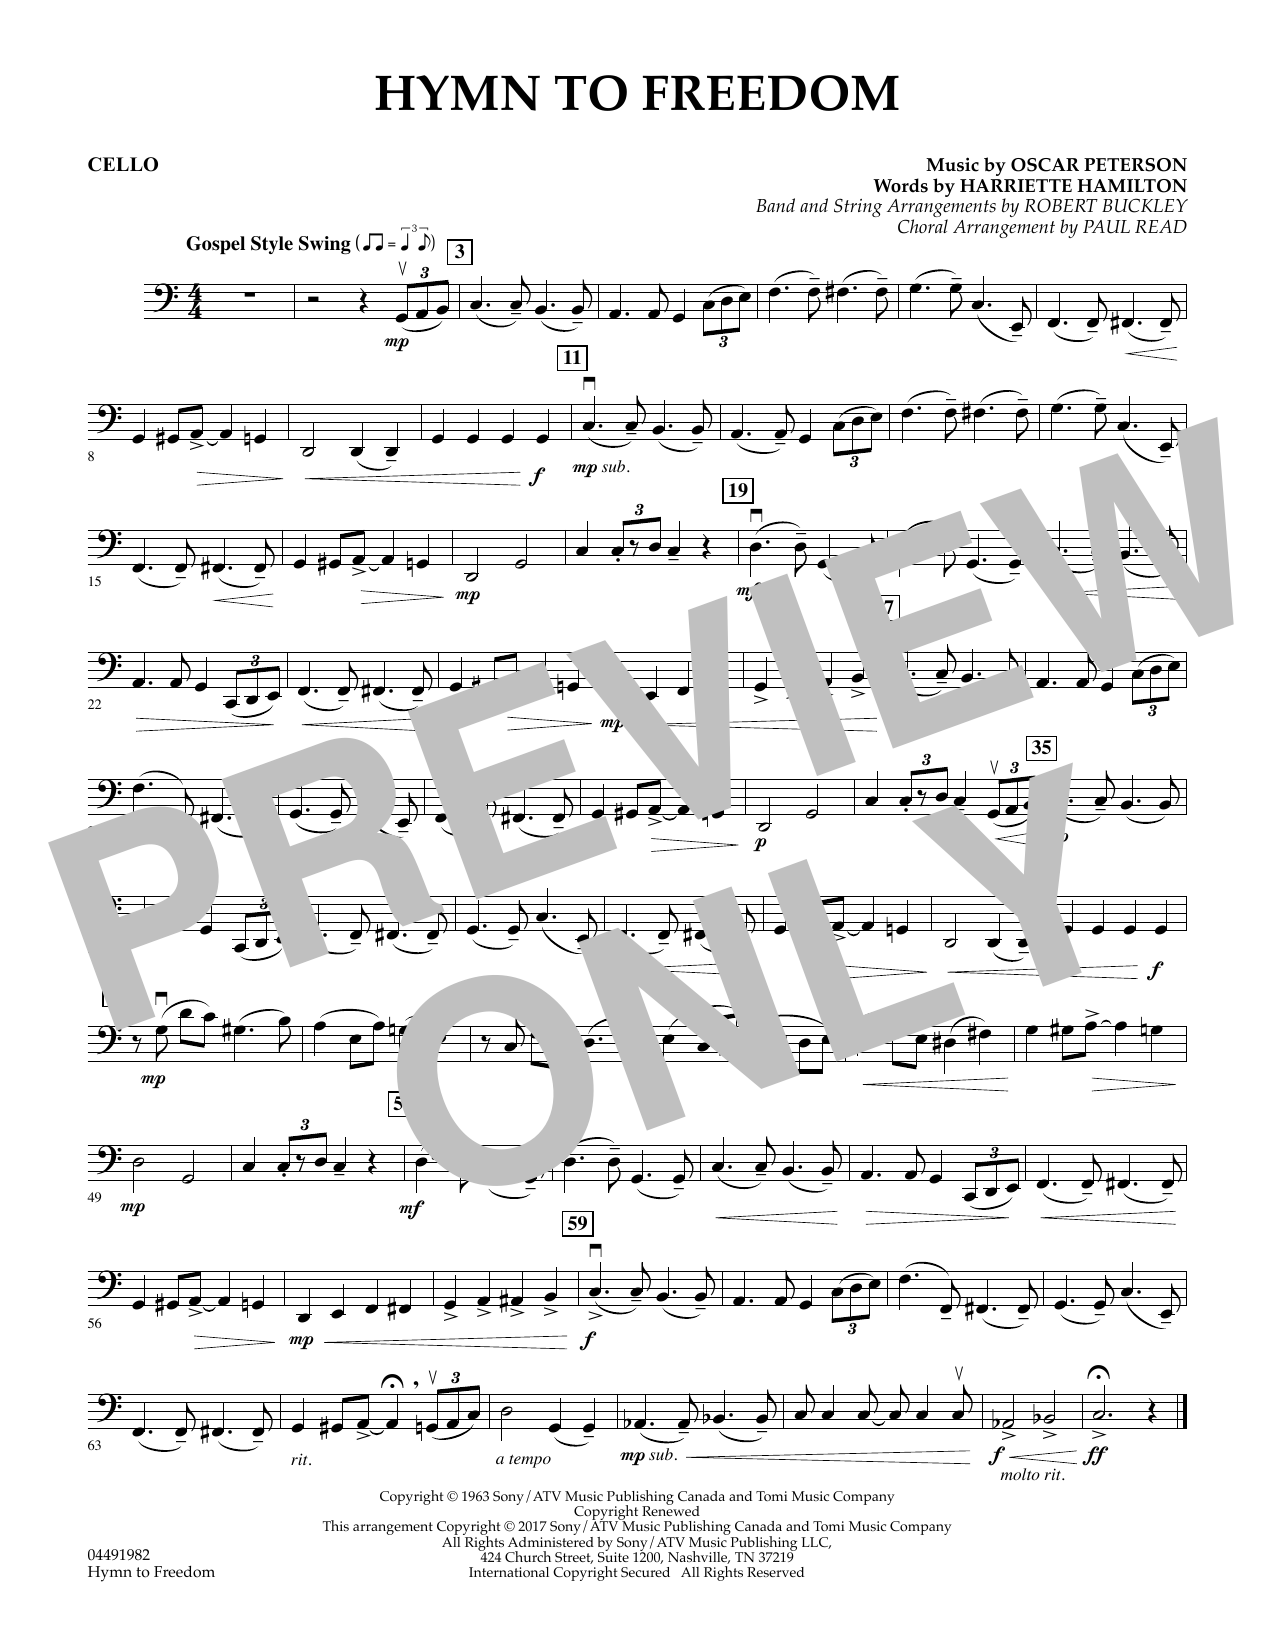 Robert Buckley Hymn to Freedom - Cello sheet music notes and chords. Download Printable PDF.